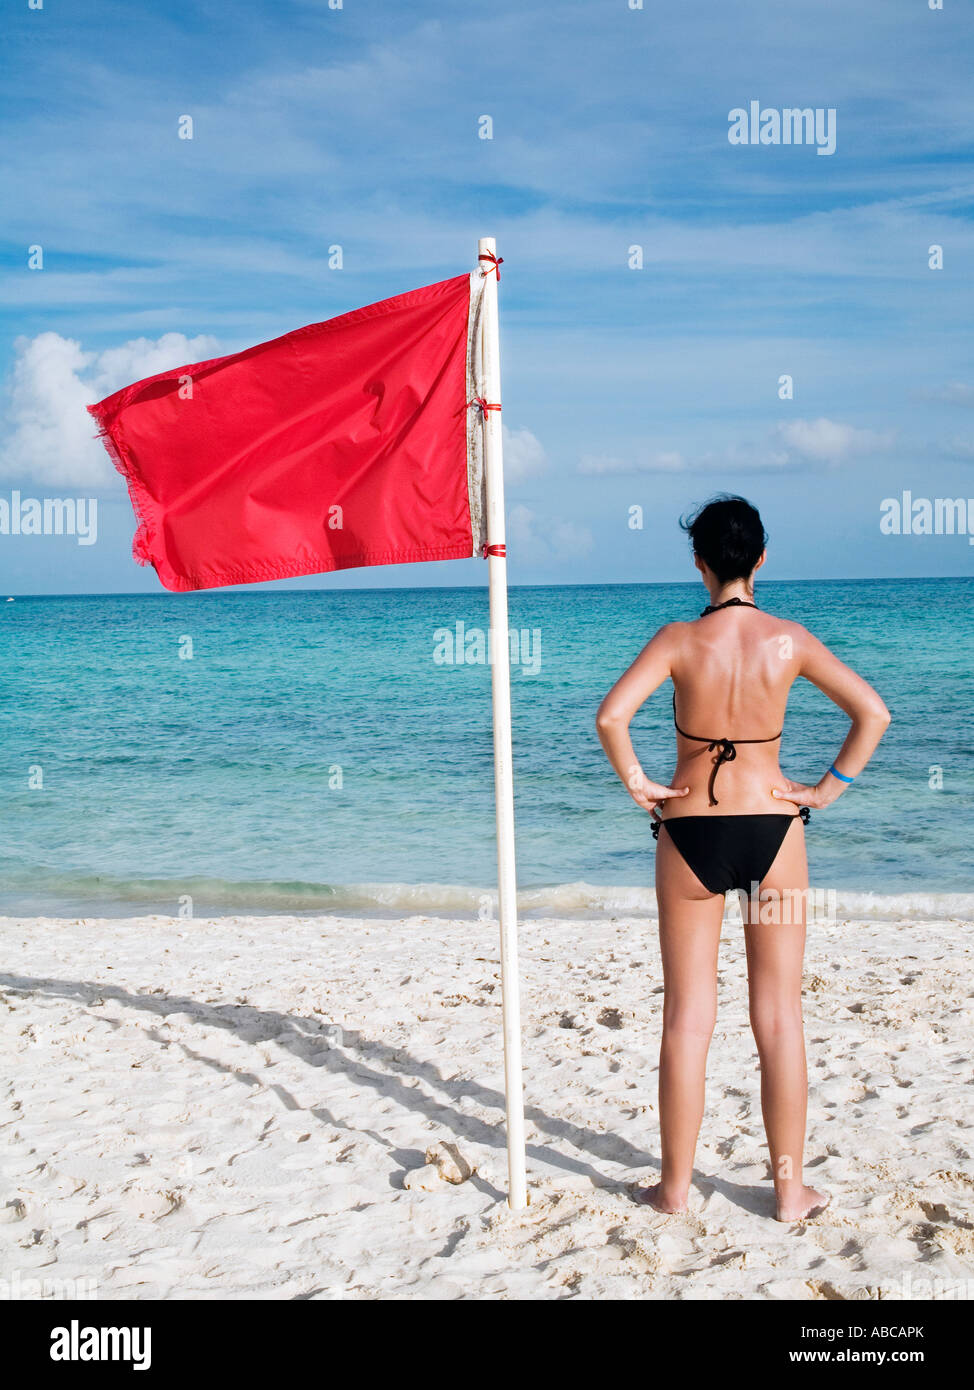 woman standing on te beach near a red flag on the sea meaning that swimming is dangerous and prohibited - Stock Image